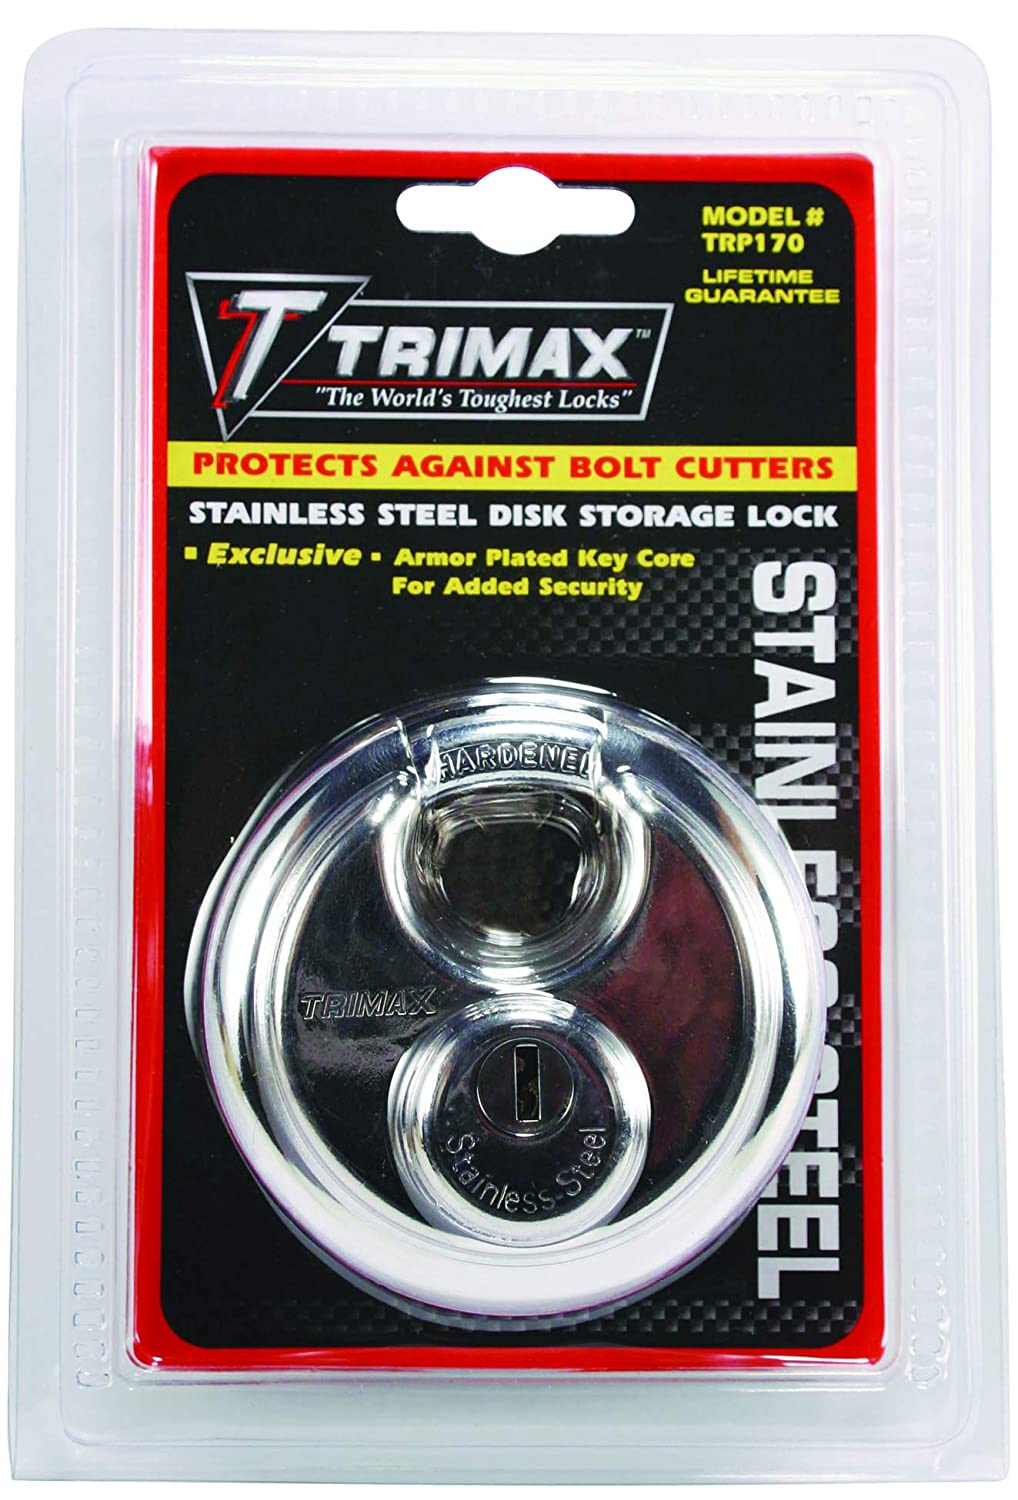 Amazon.com: Trimax TRP170 Stainless Steel 70mm Round Pad Lock - 10mm Shackle: Automotive